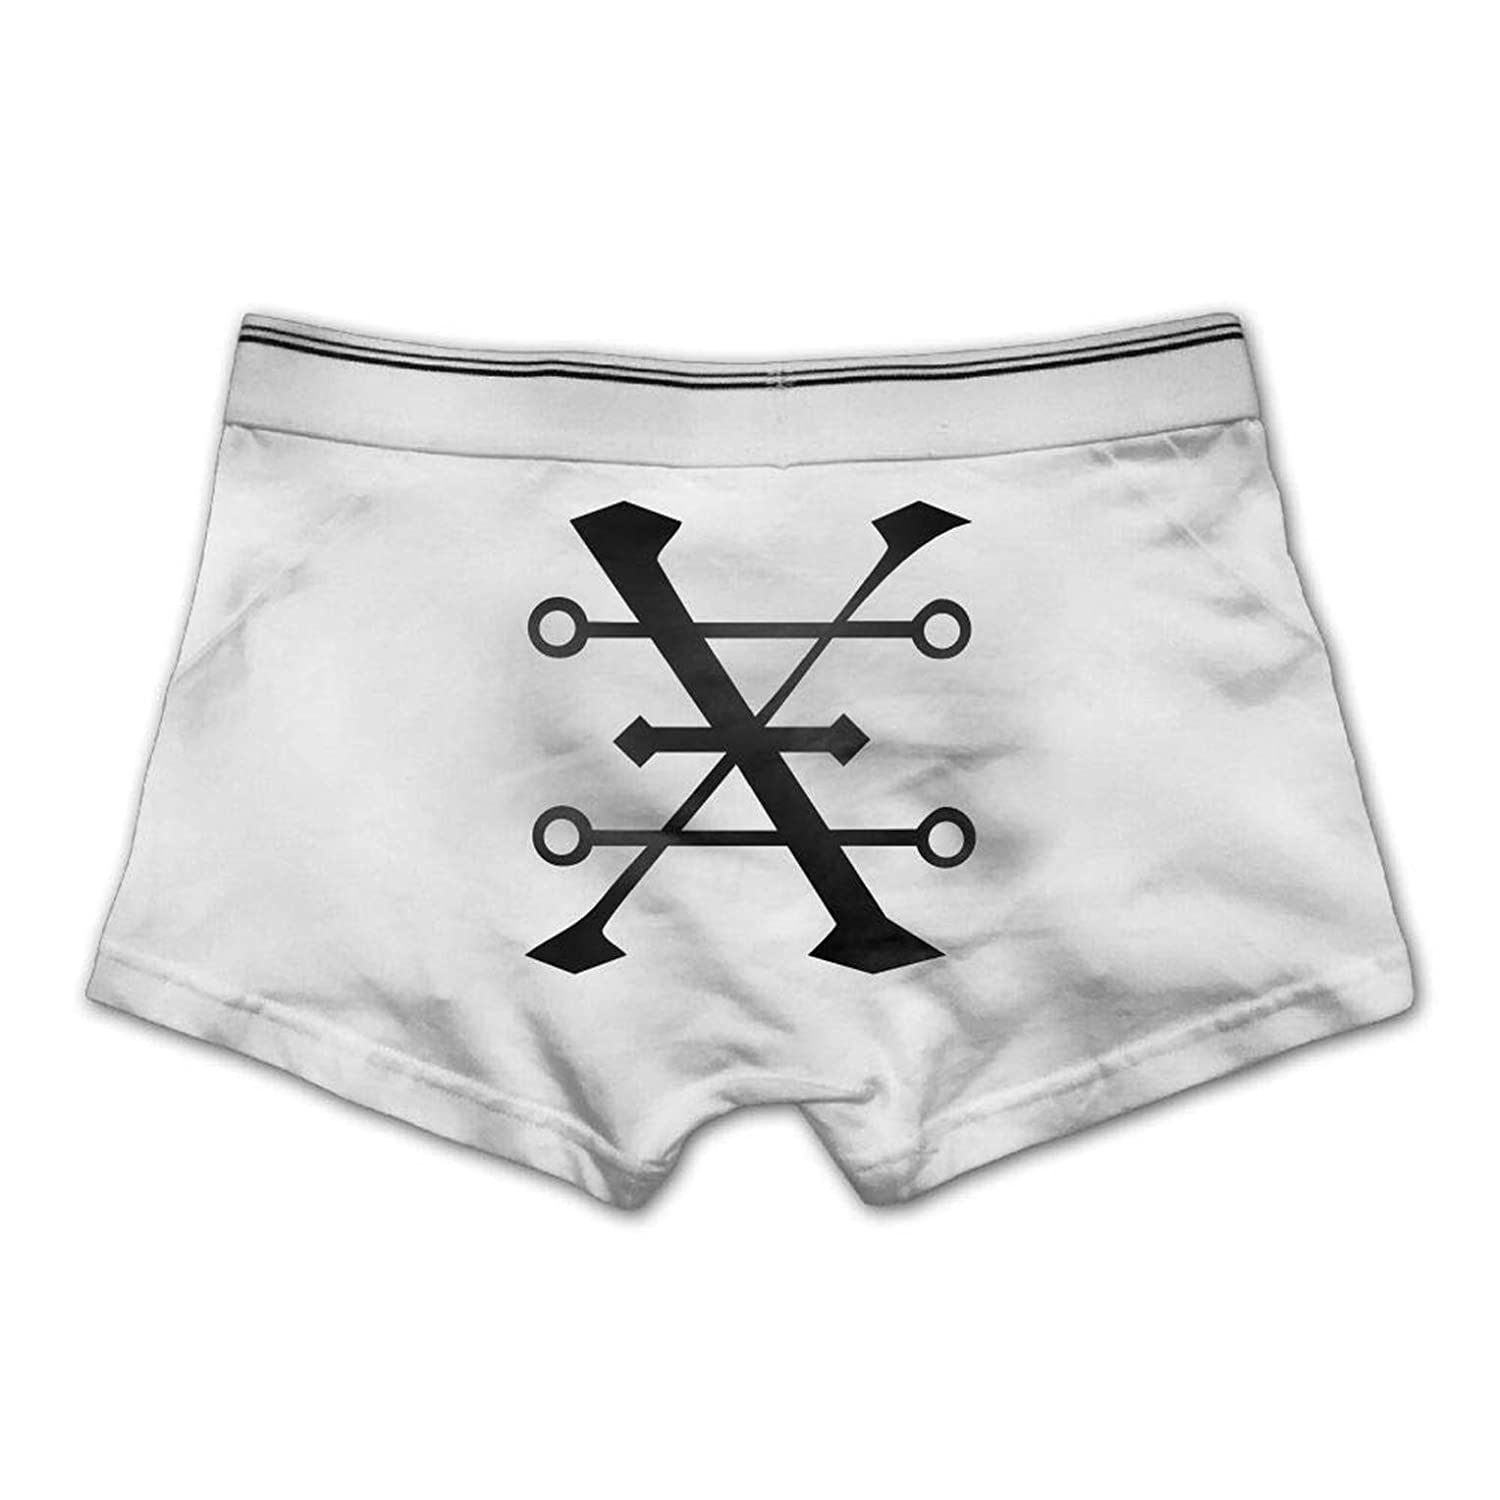 Mens Boxer Briefs Underwear Copper Alchemy Symbol Printed Underpants Light Weight Casual Breathable Soft Medium,White